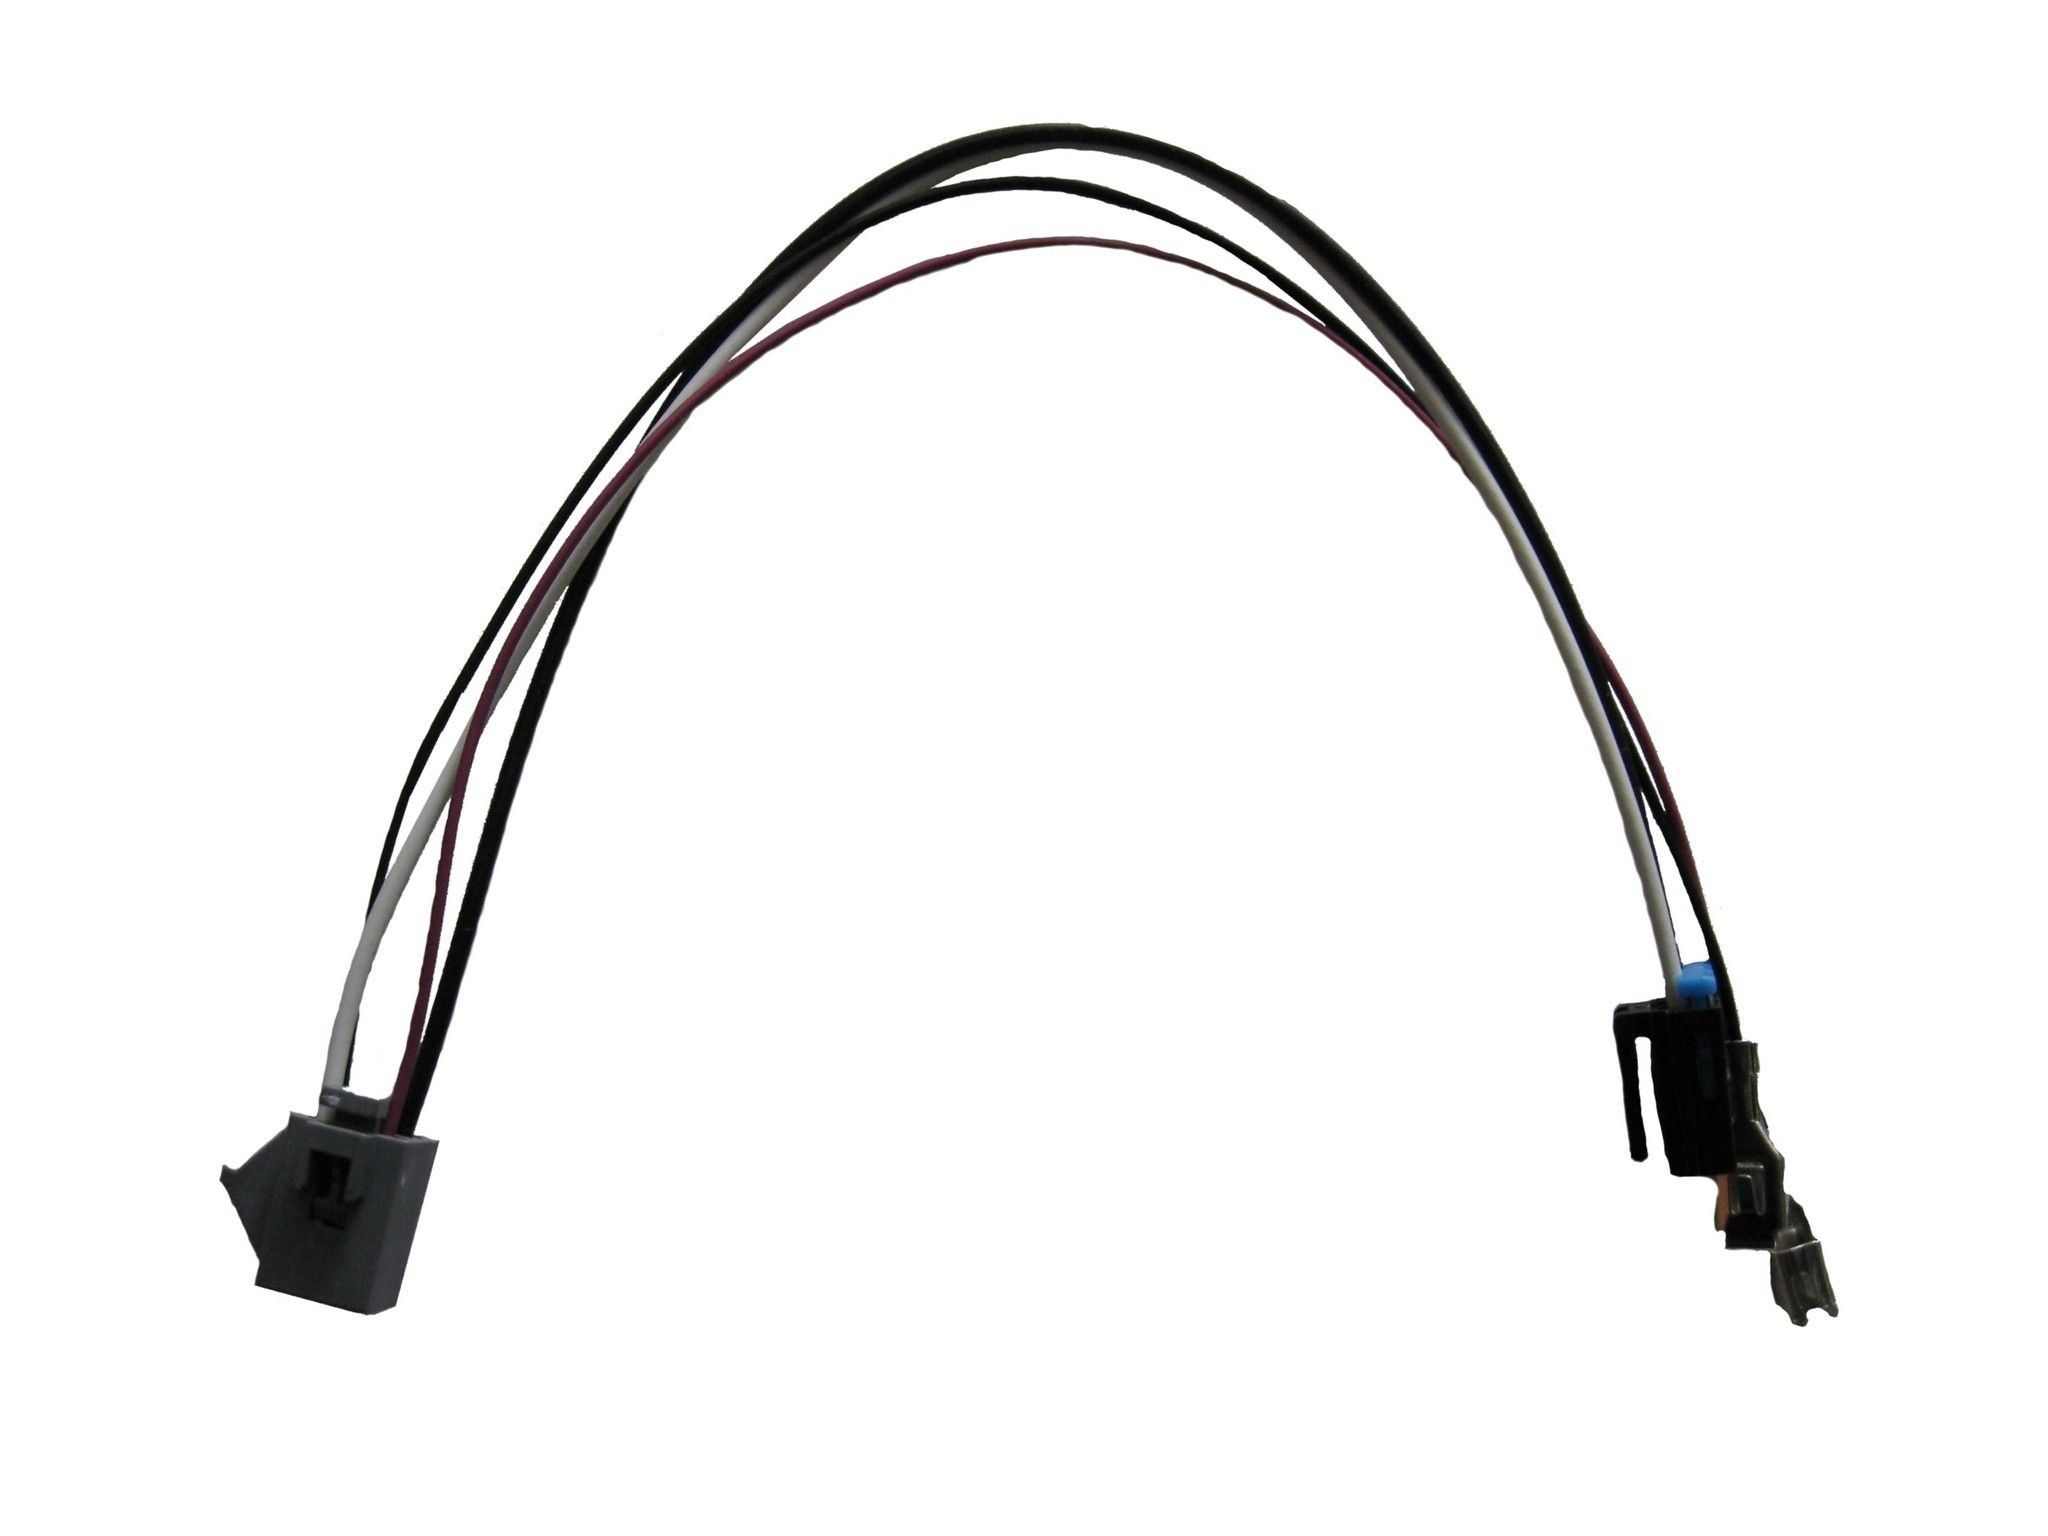 Gmc Safari Fuel Pump Wiring Harness Replacement Airtex Autobest Protection 1990 4 Cyl 25l Fw900